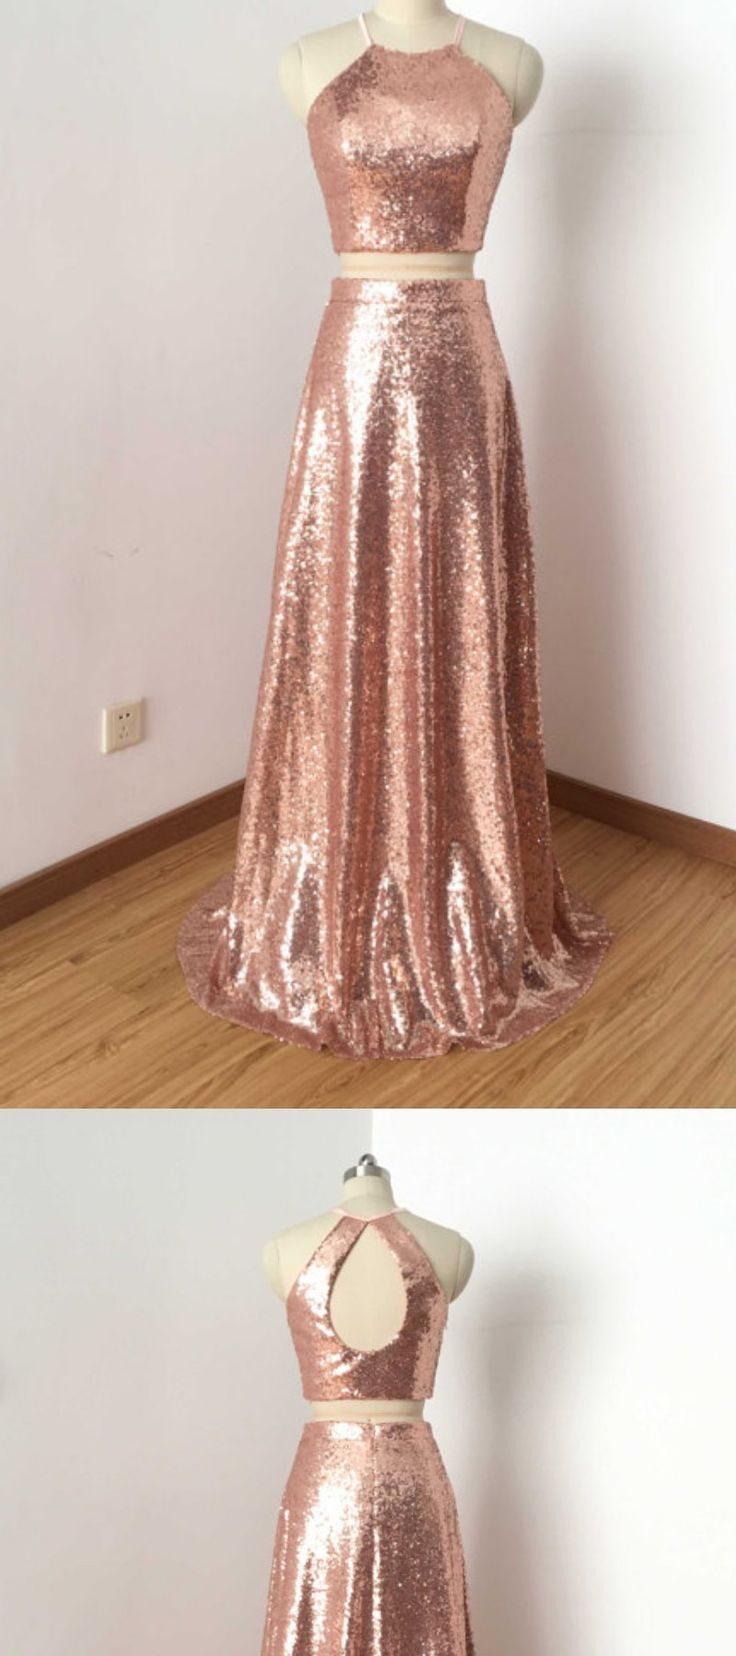 Two Piece Rose Gold Sequin Long Prom Dress with a high neck. I am absolutely in love with this 2 piece rose gold long special occassion dress. It screams Hollywood glamour with trendy sparkly rose gold accents. The peek a boo back is s5unning in itself! This is the perfect dress for prom, homecoming, and any event where you want to be best dressed and the center of attention #promdresses #homecomingdresses #ad #specialoccassiondress #dress #rosegold